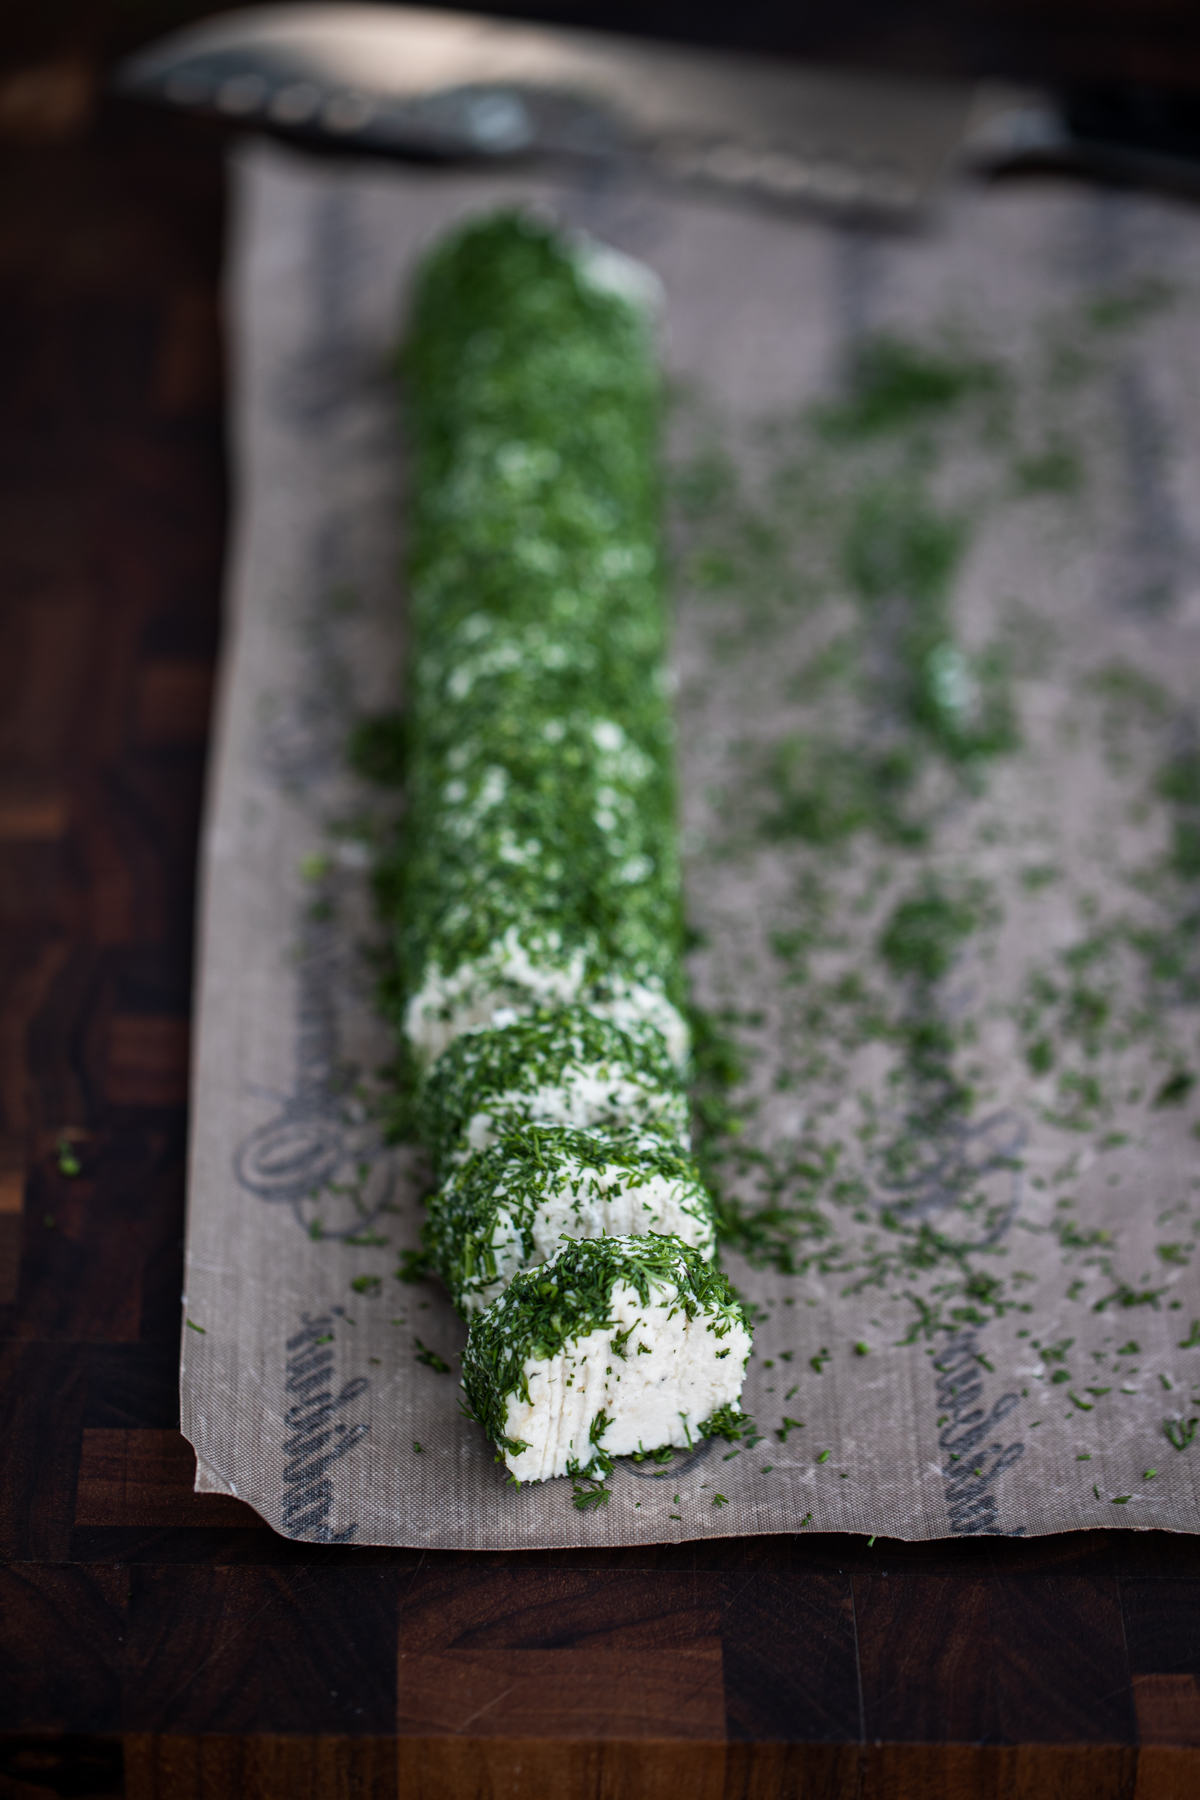 Macadamia cheese log rolled in herbs and cut into rounds on a dehydrator nonstick sheet with a knife in the background